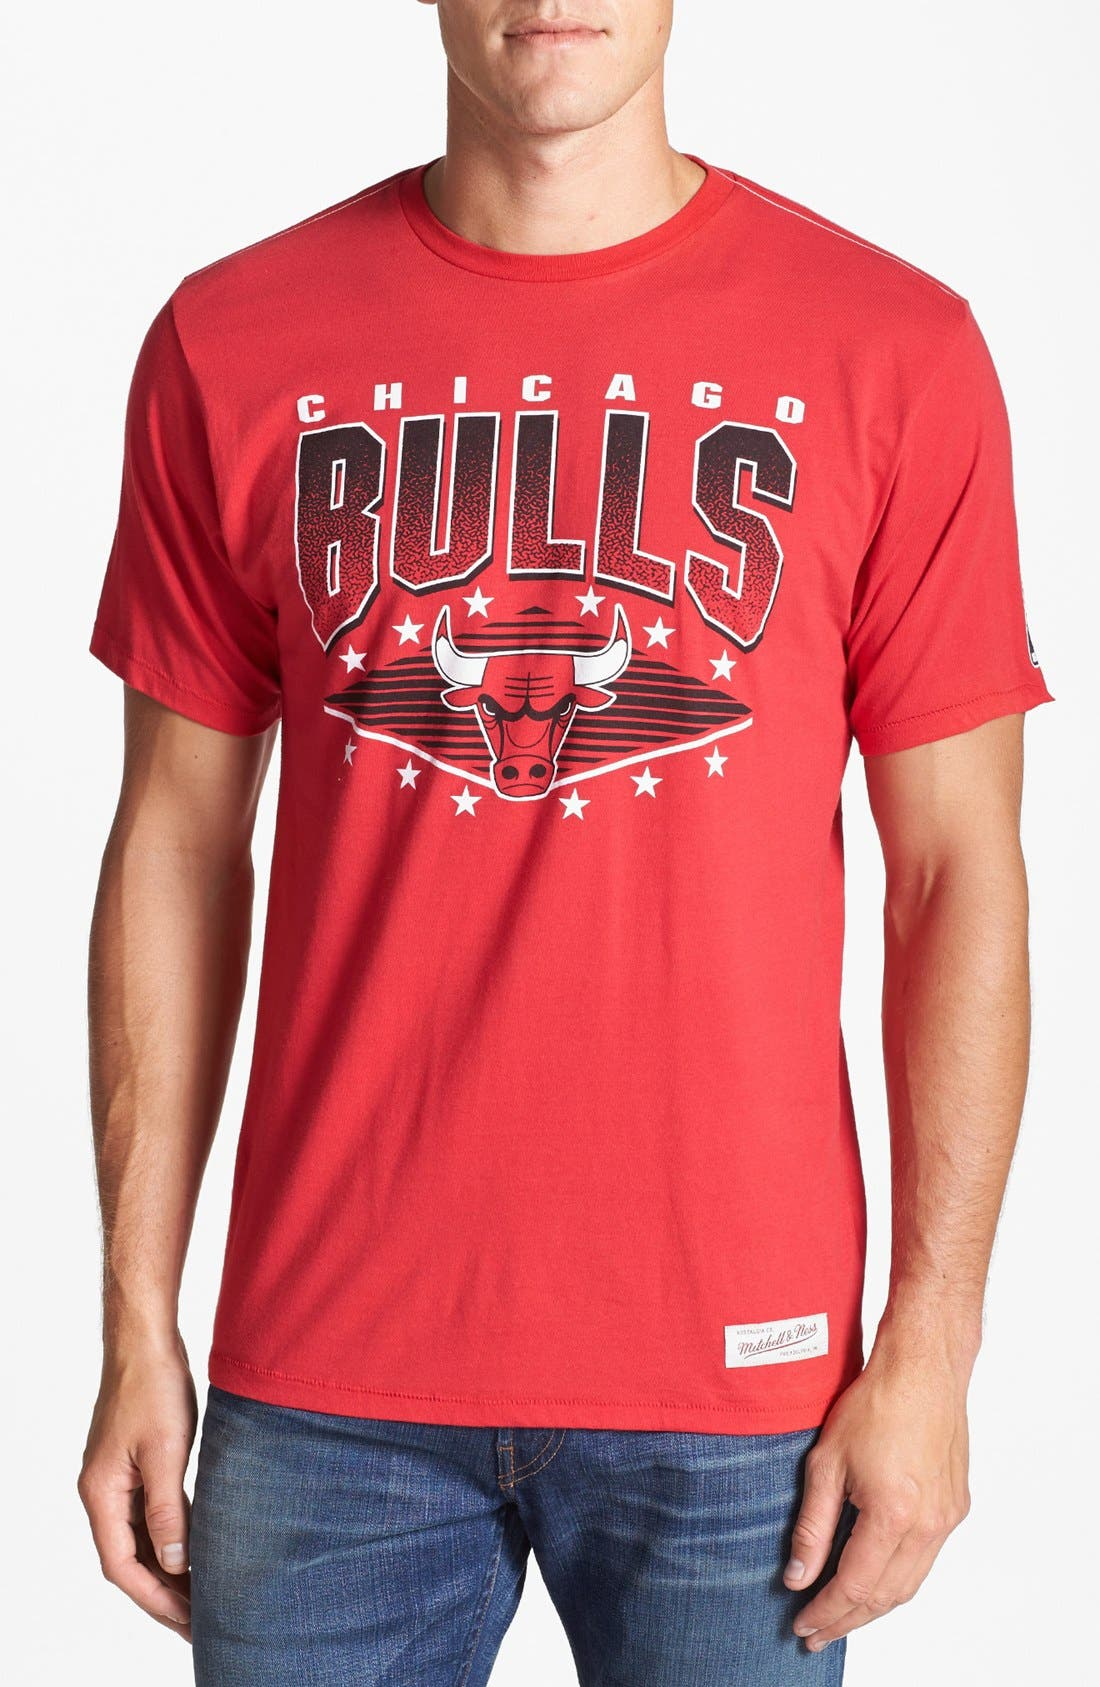 Alternate Image 1 Selected - Mitchell & Ness 'Chicago Bulls' T-Shirt